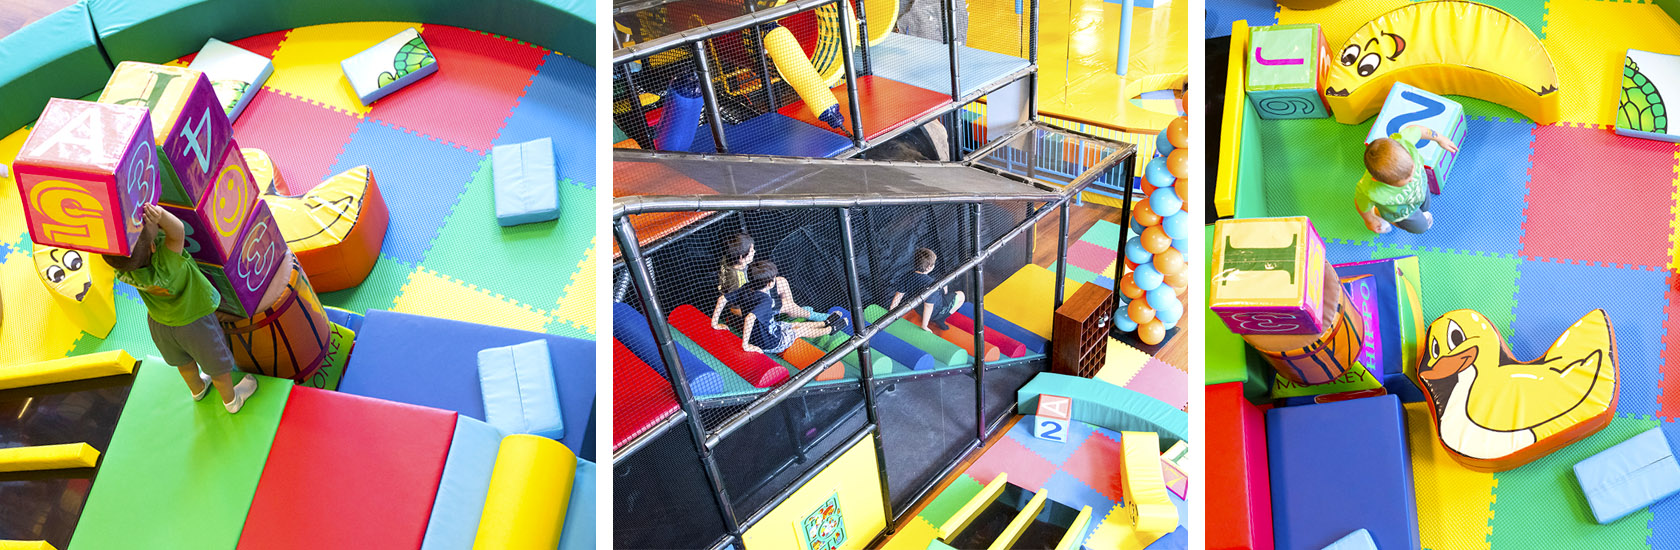 Funtopia_Glenview_Challenges_Jungle-Gym